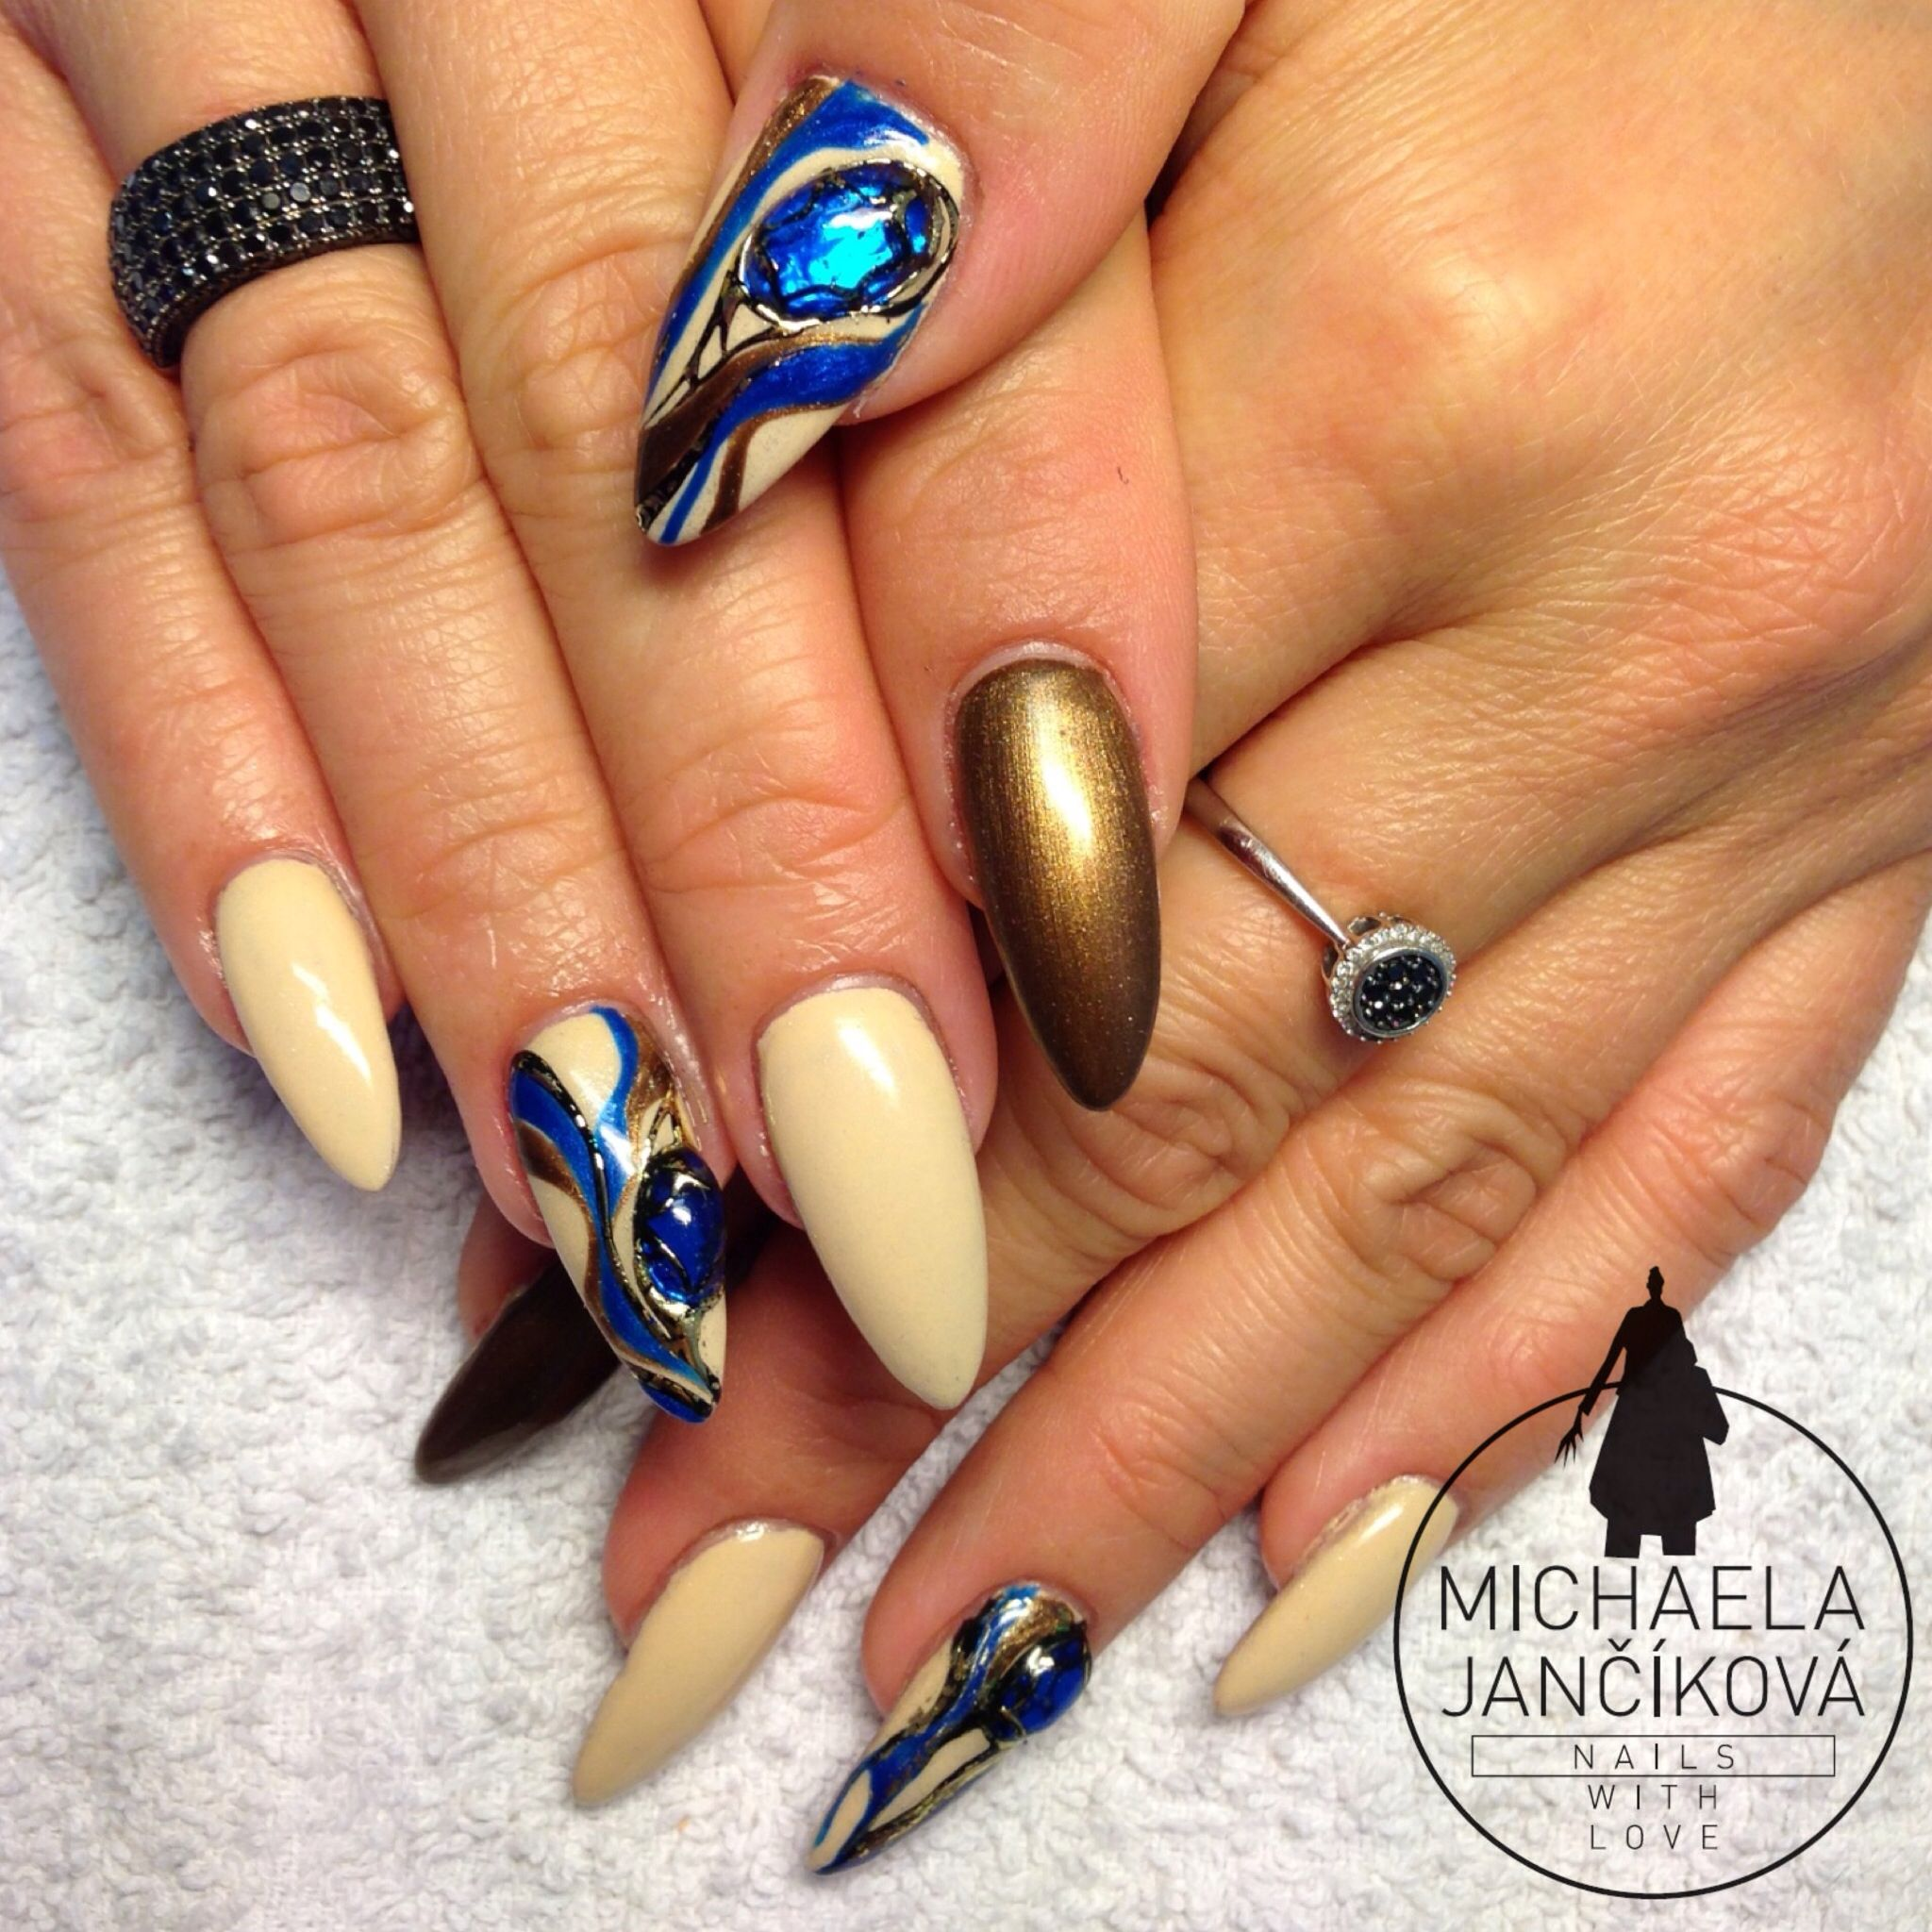 Nail art, nails with liquid stones | Nails With Love ...